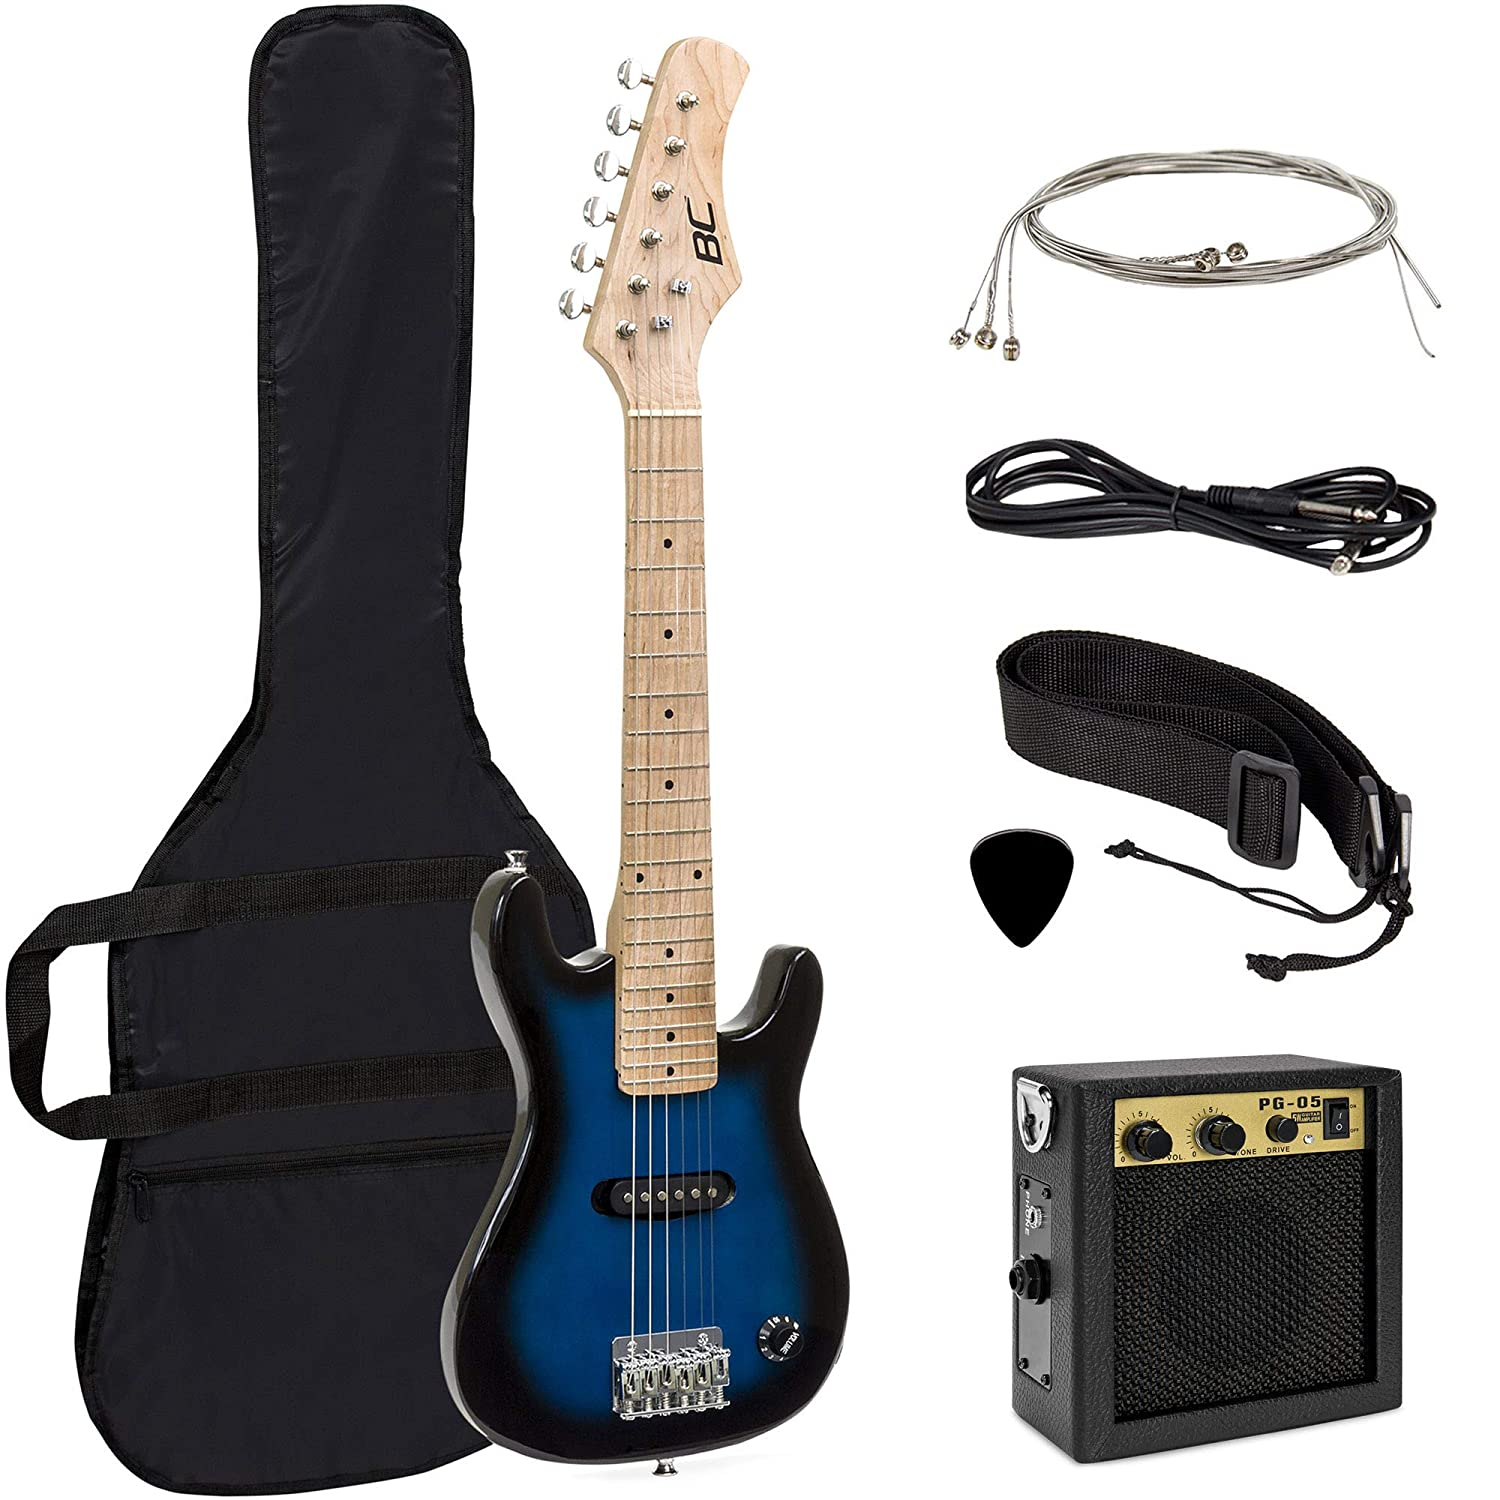 "Best Choice Products Electric Guitar Kids 30"" Blue Guitar W/ Amp, Case, Strap (Blue)"